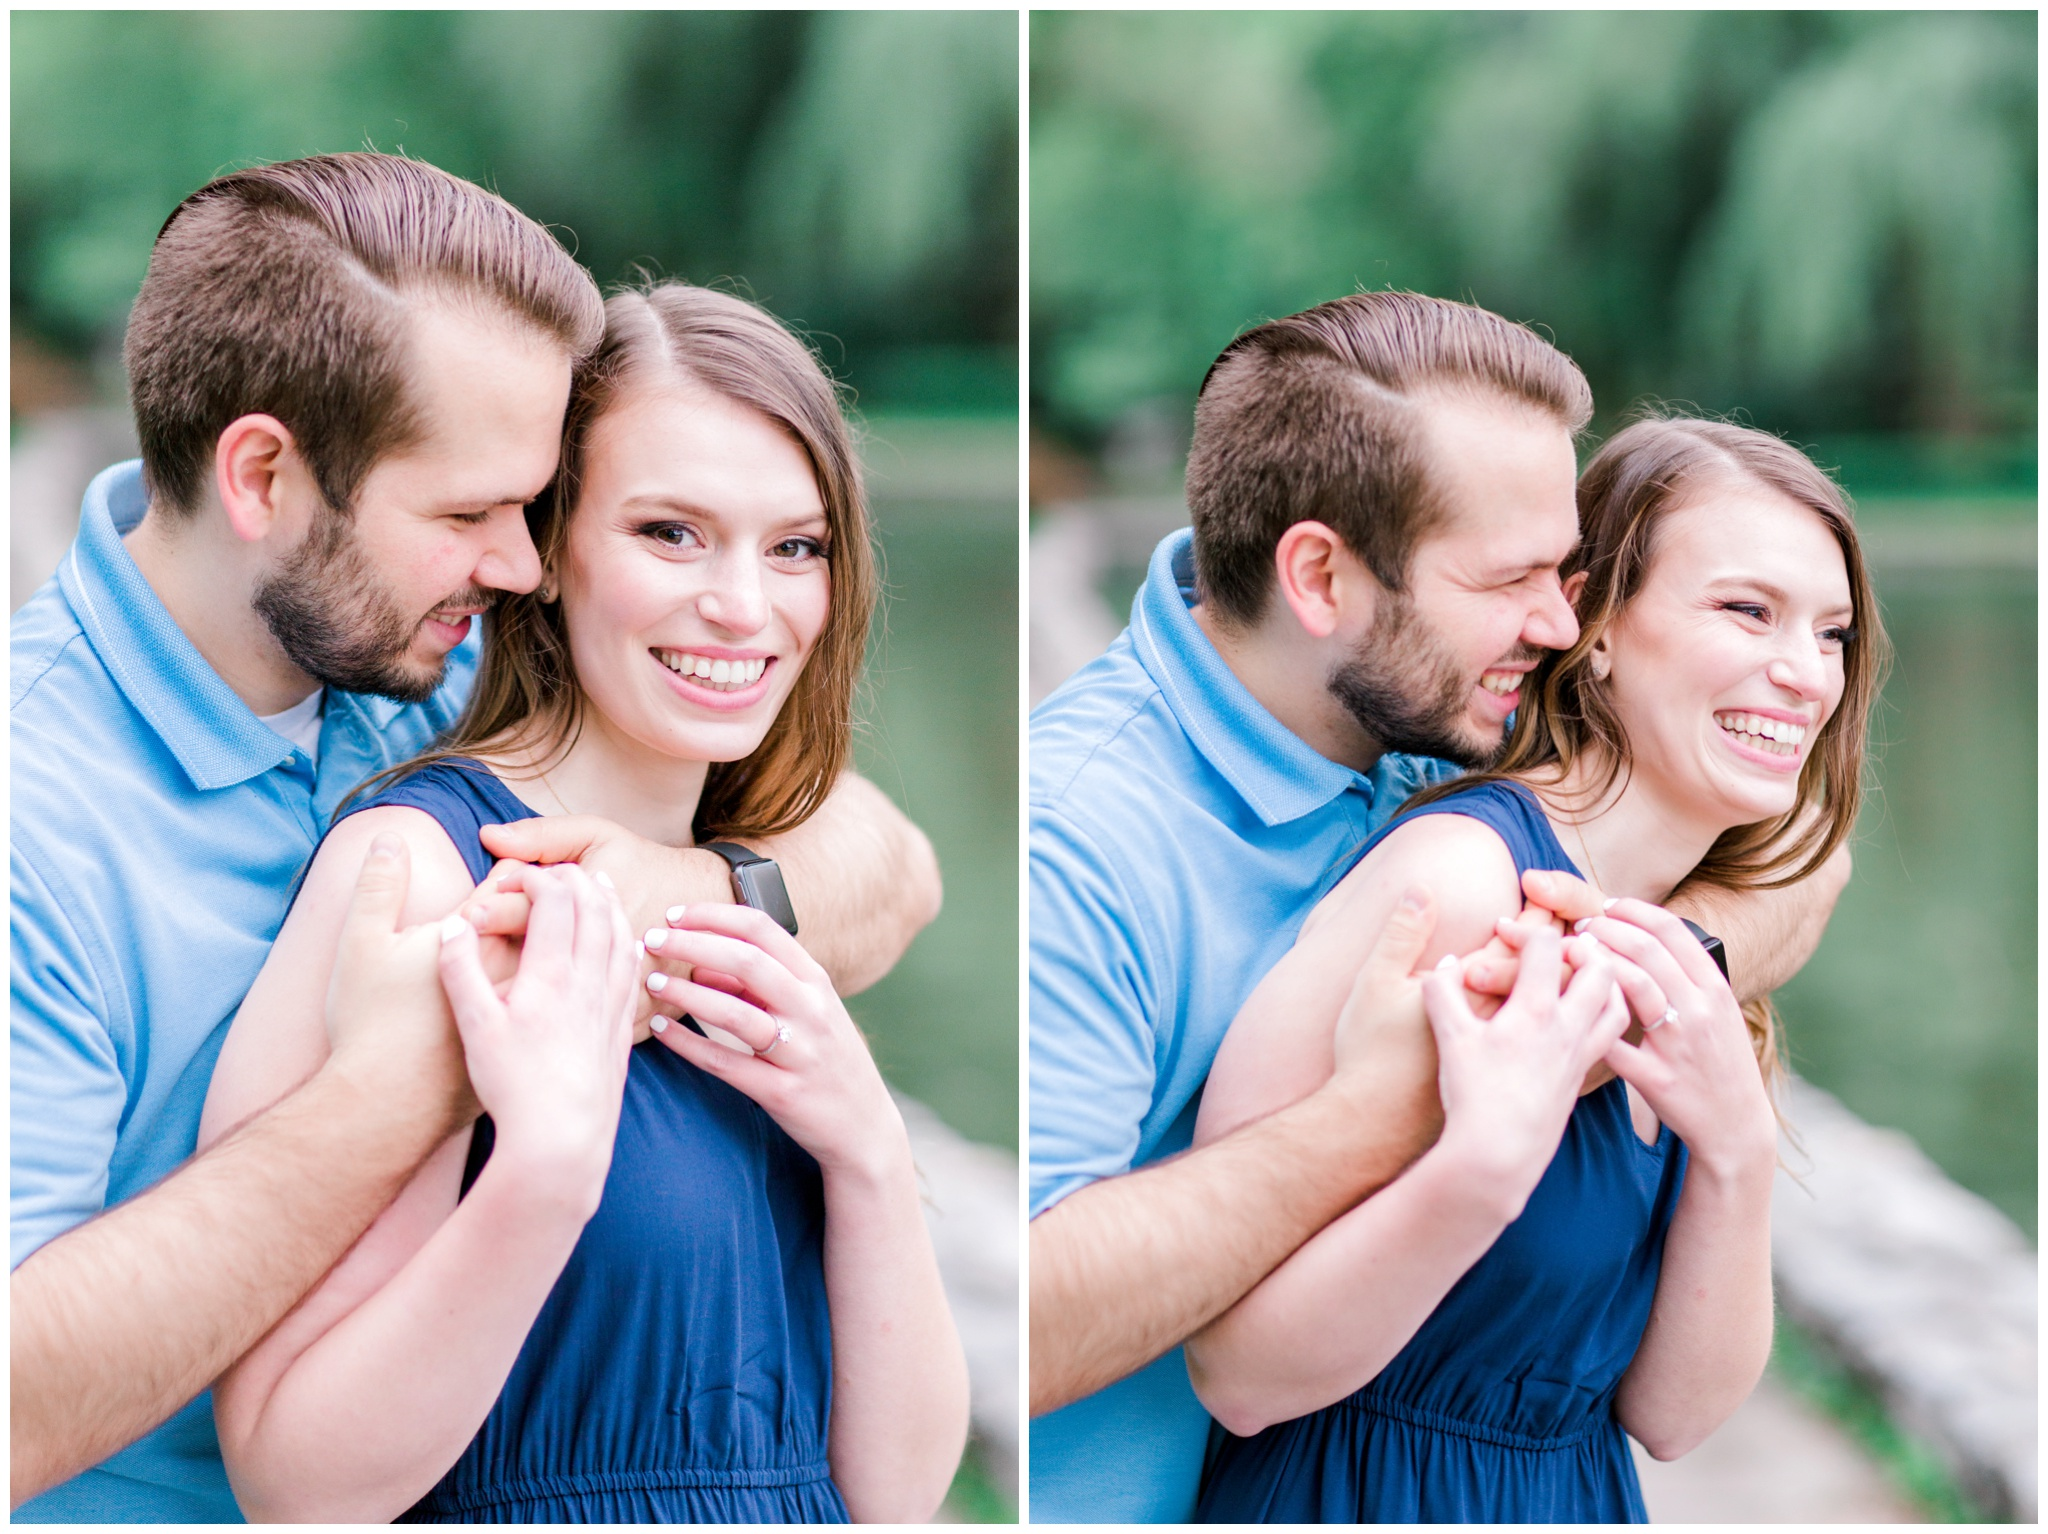 hagerstown city park engagement, maryland wedding photographer, maryland engagement photographer, virginia wedding photographer, virginia engagement photographer, bethesda wedding photographer, dc wedding photographer